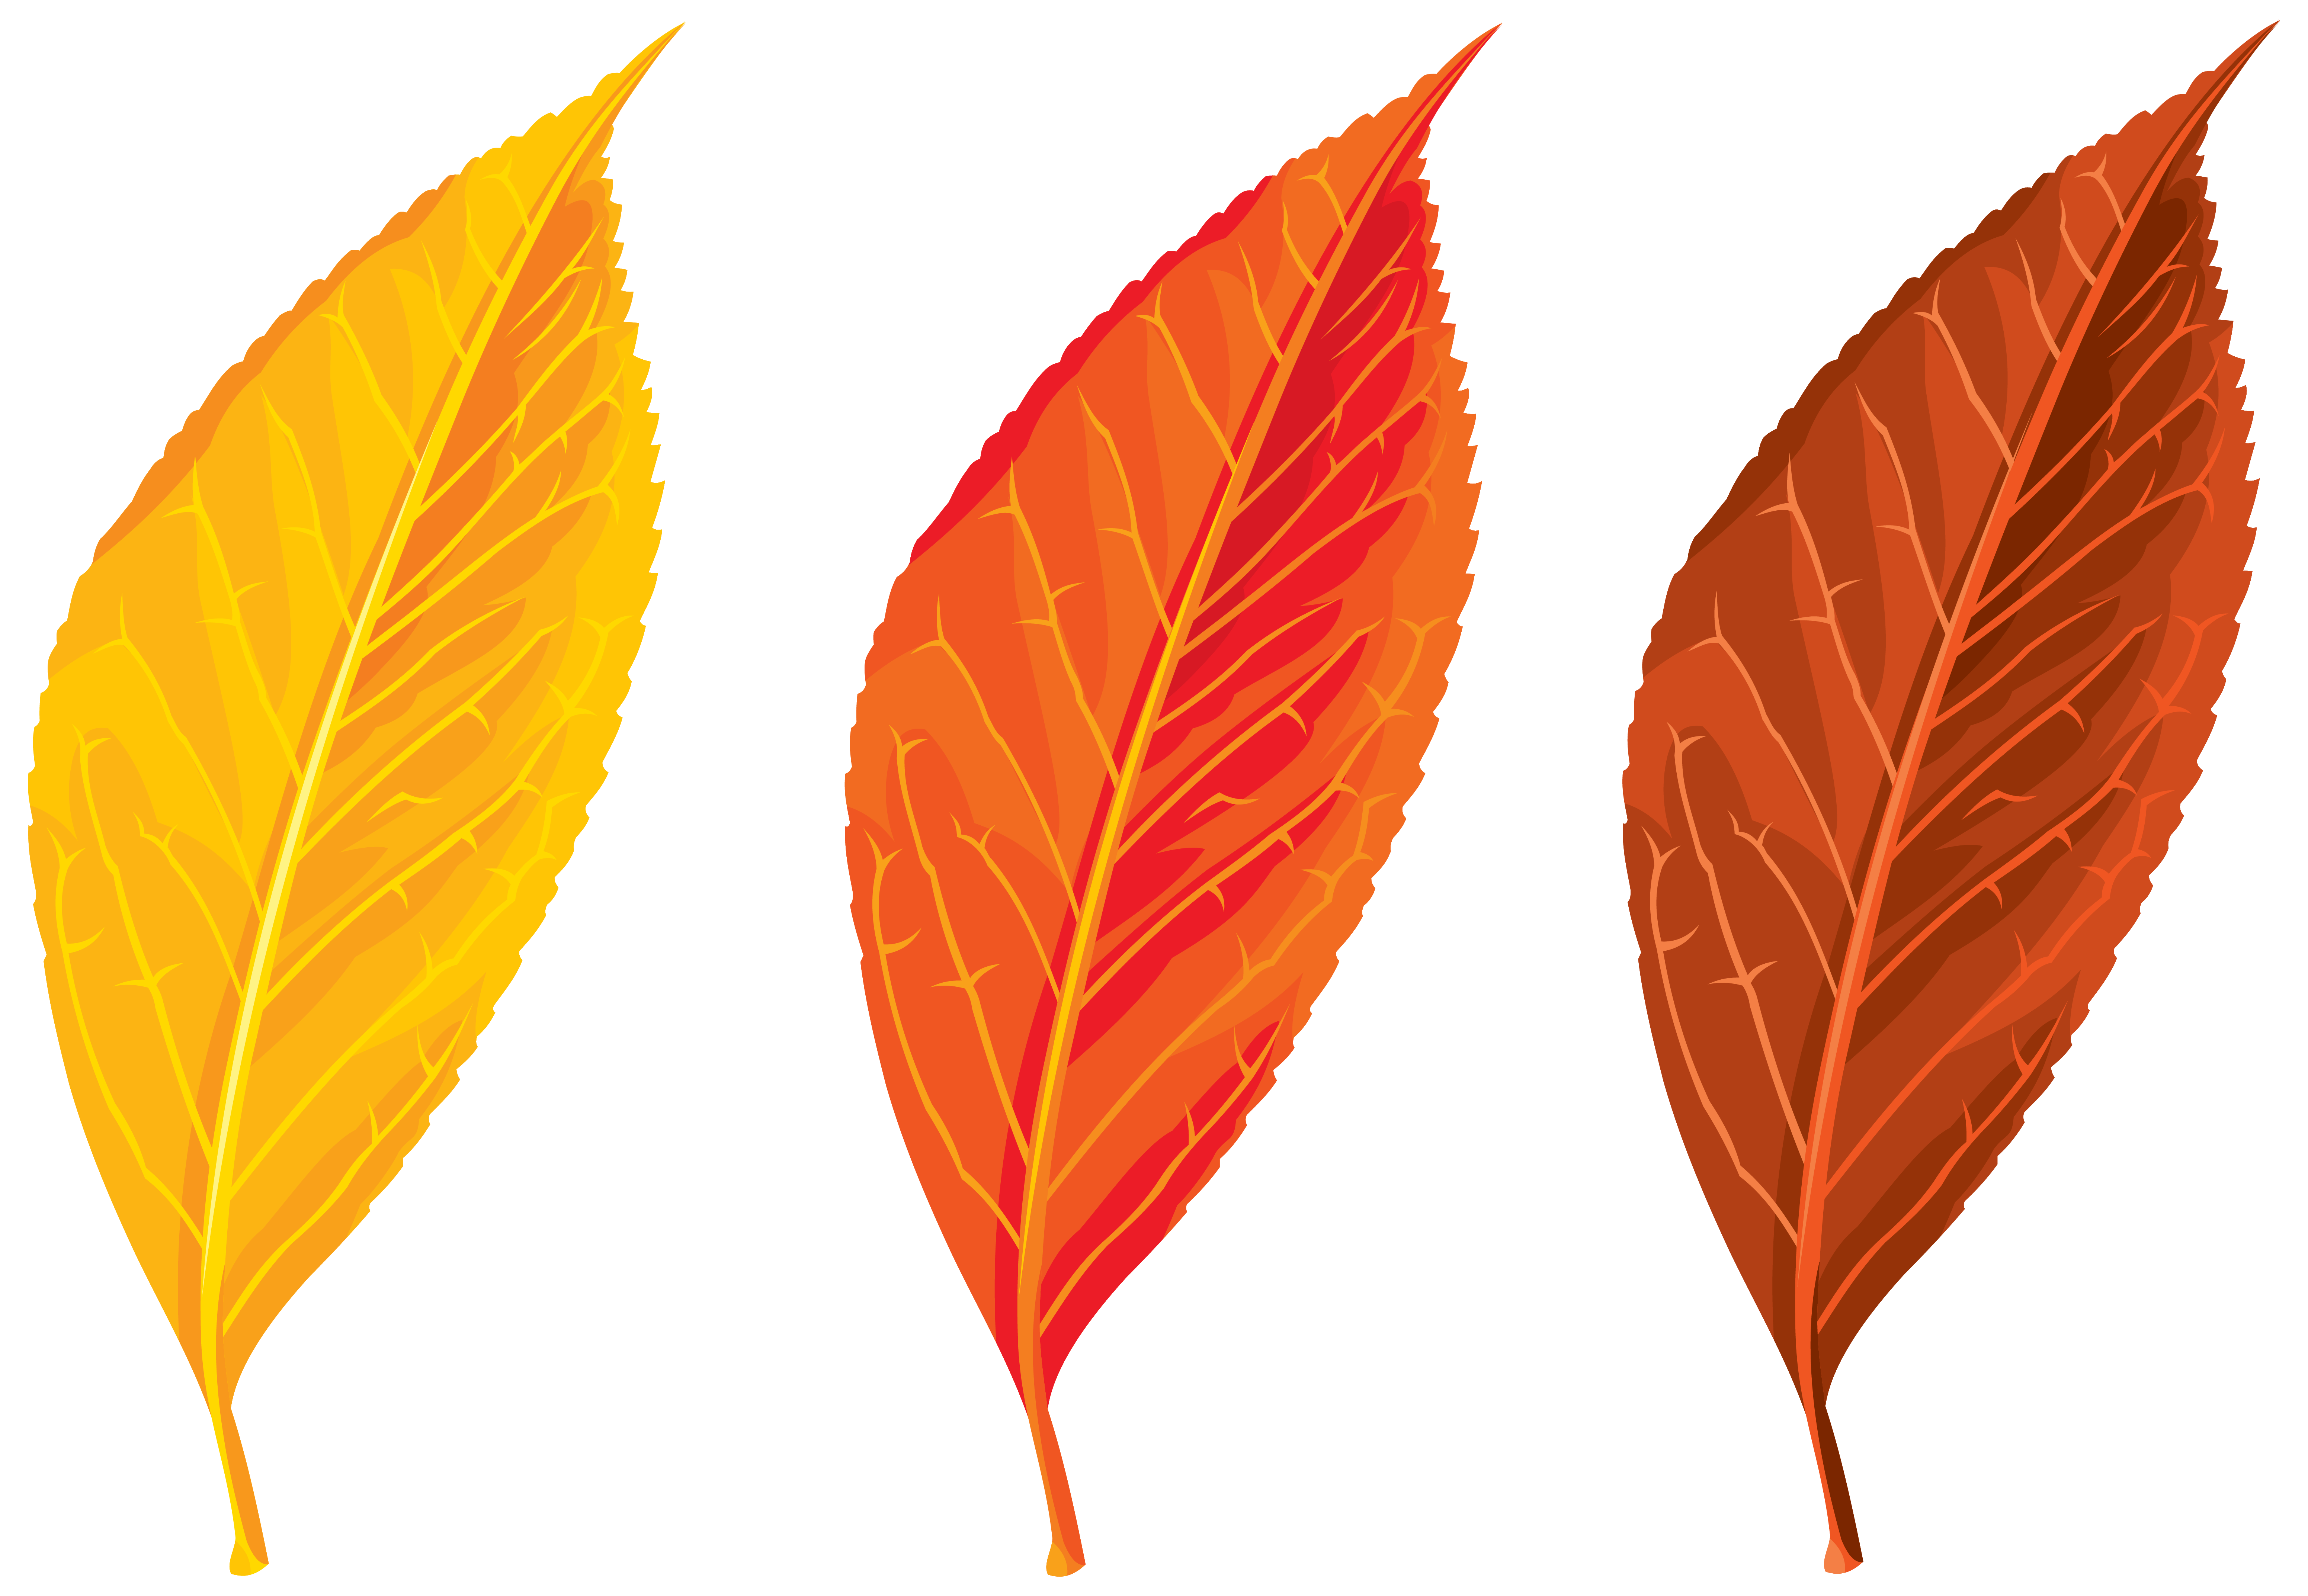 Download autumn free png. Winter clipart spring